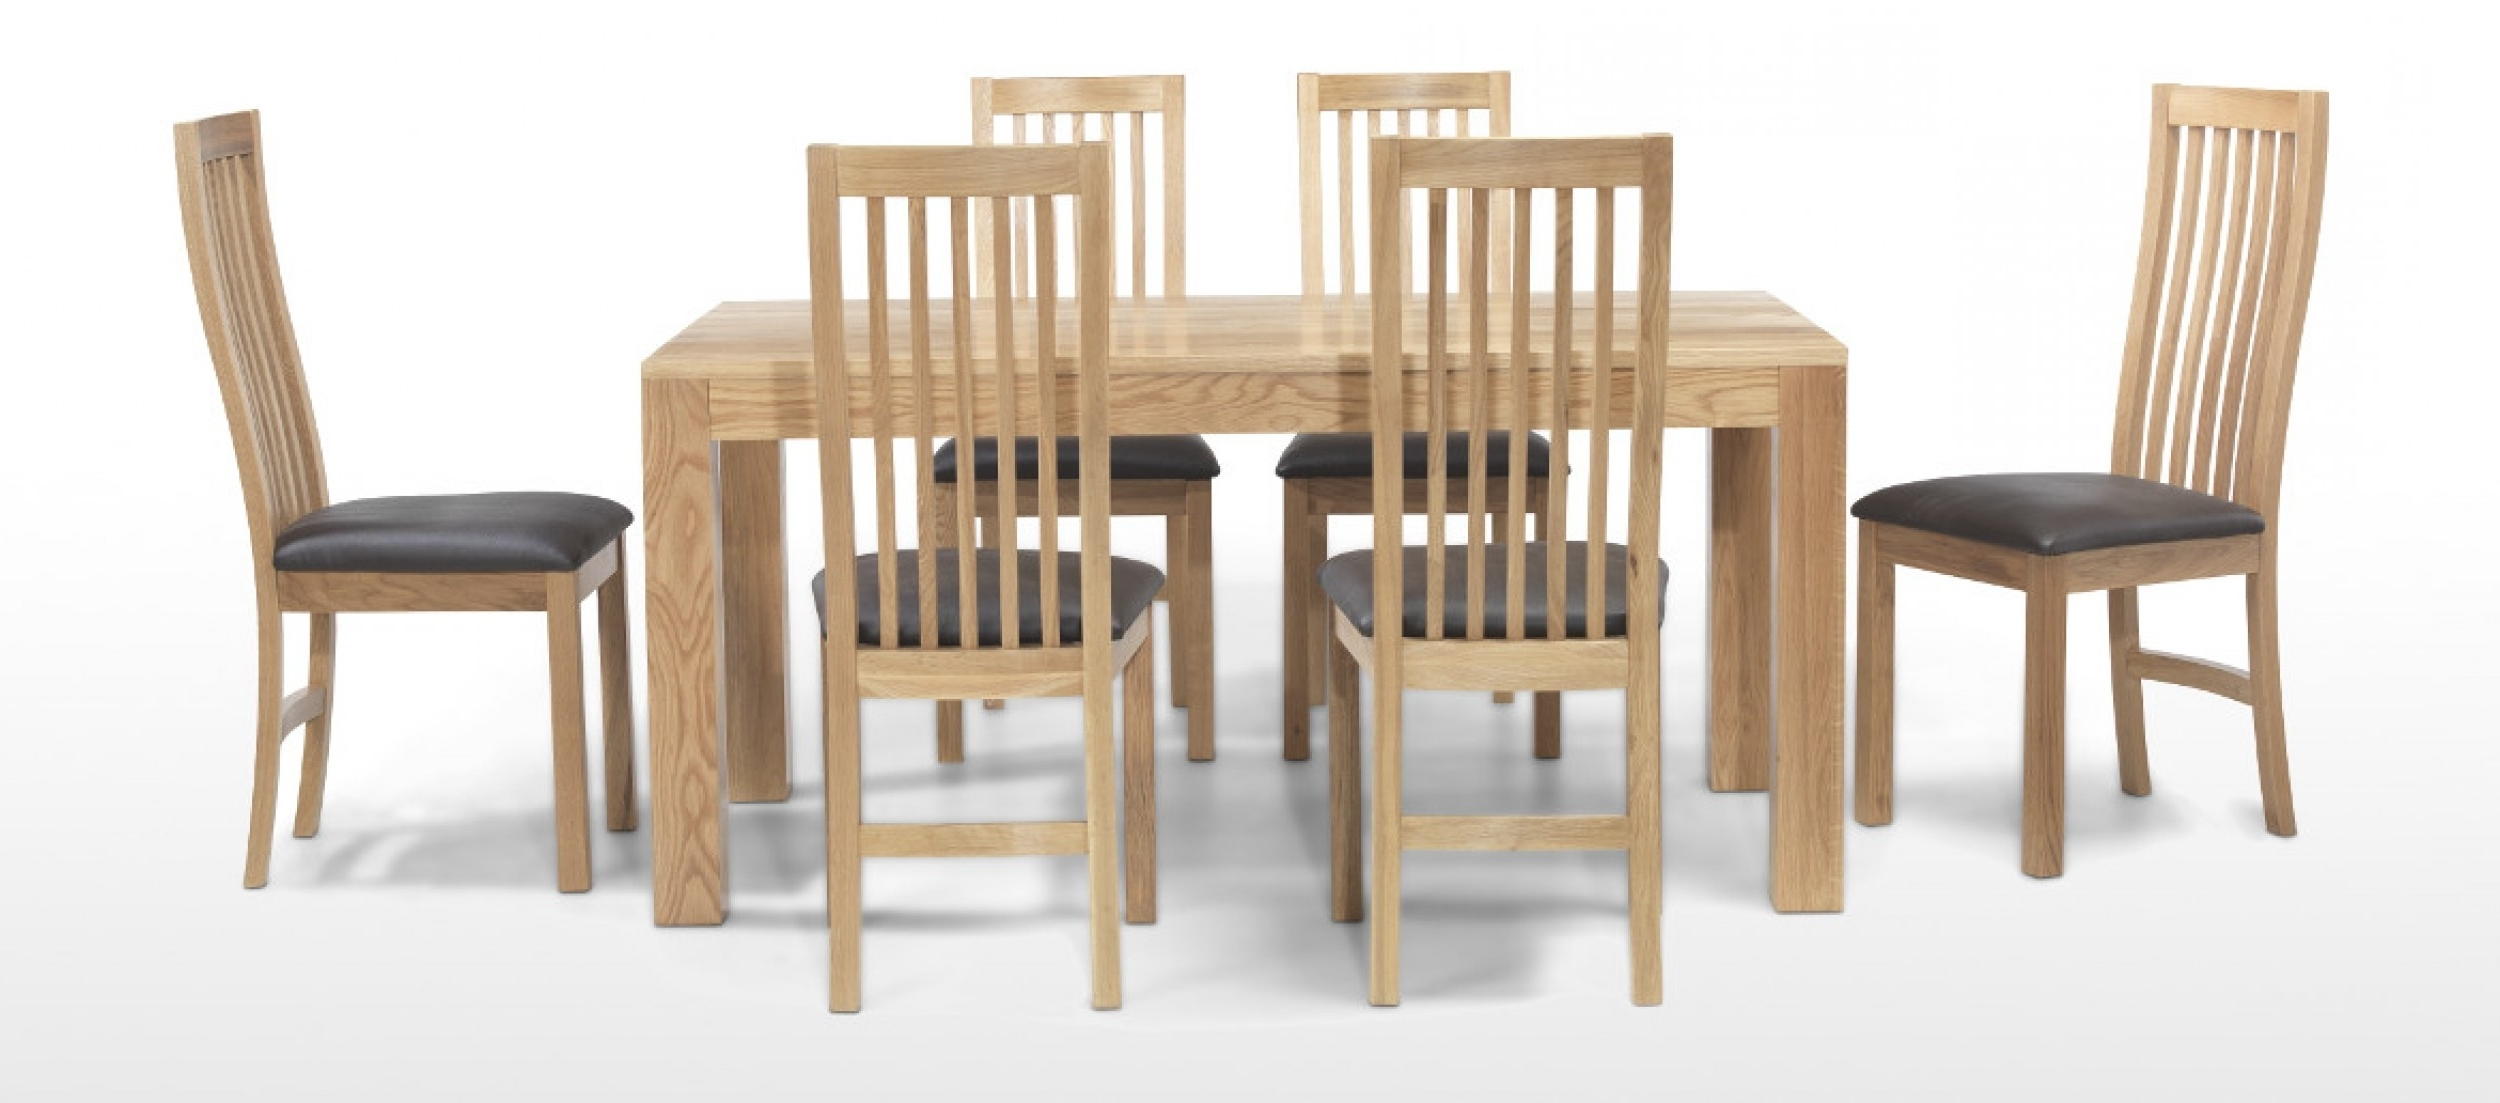 Quercus Living inside 6 Seat Dining Table Sets